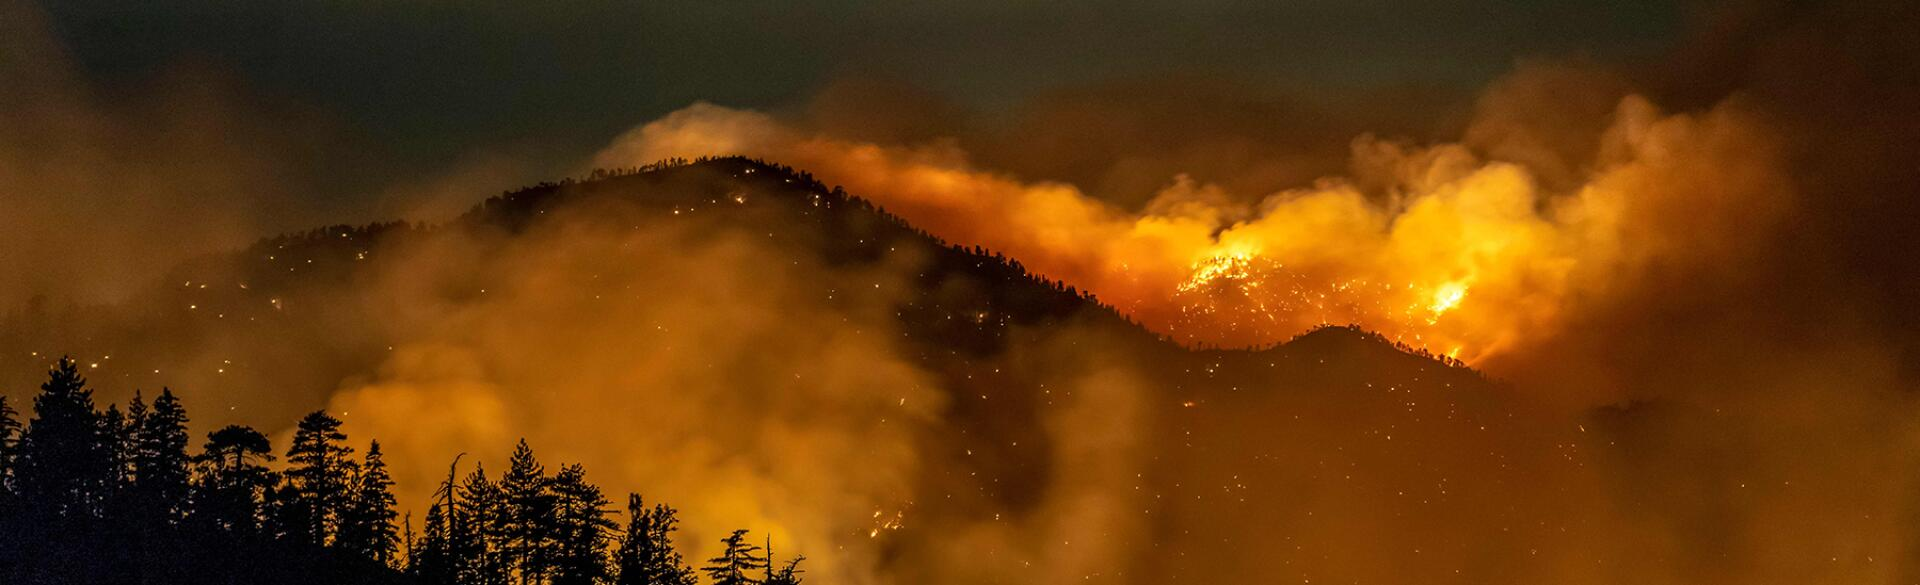 image_of_wildfires_in_california_GettyImages-1228573888_1800